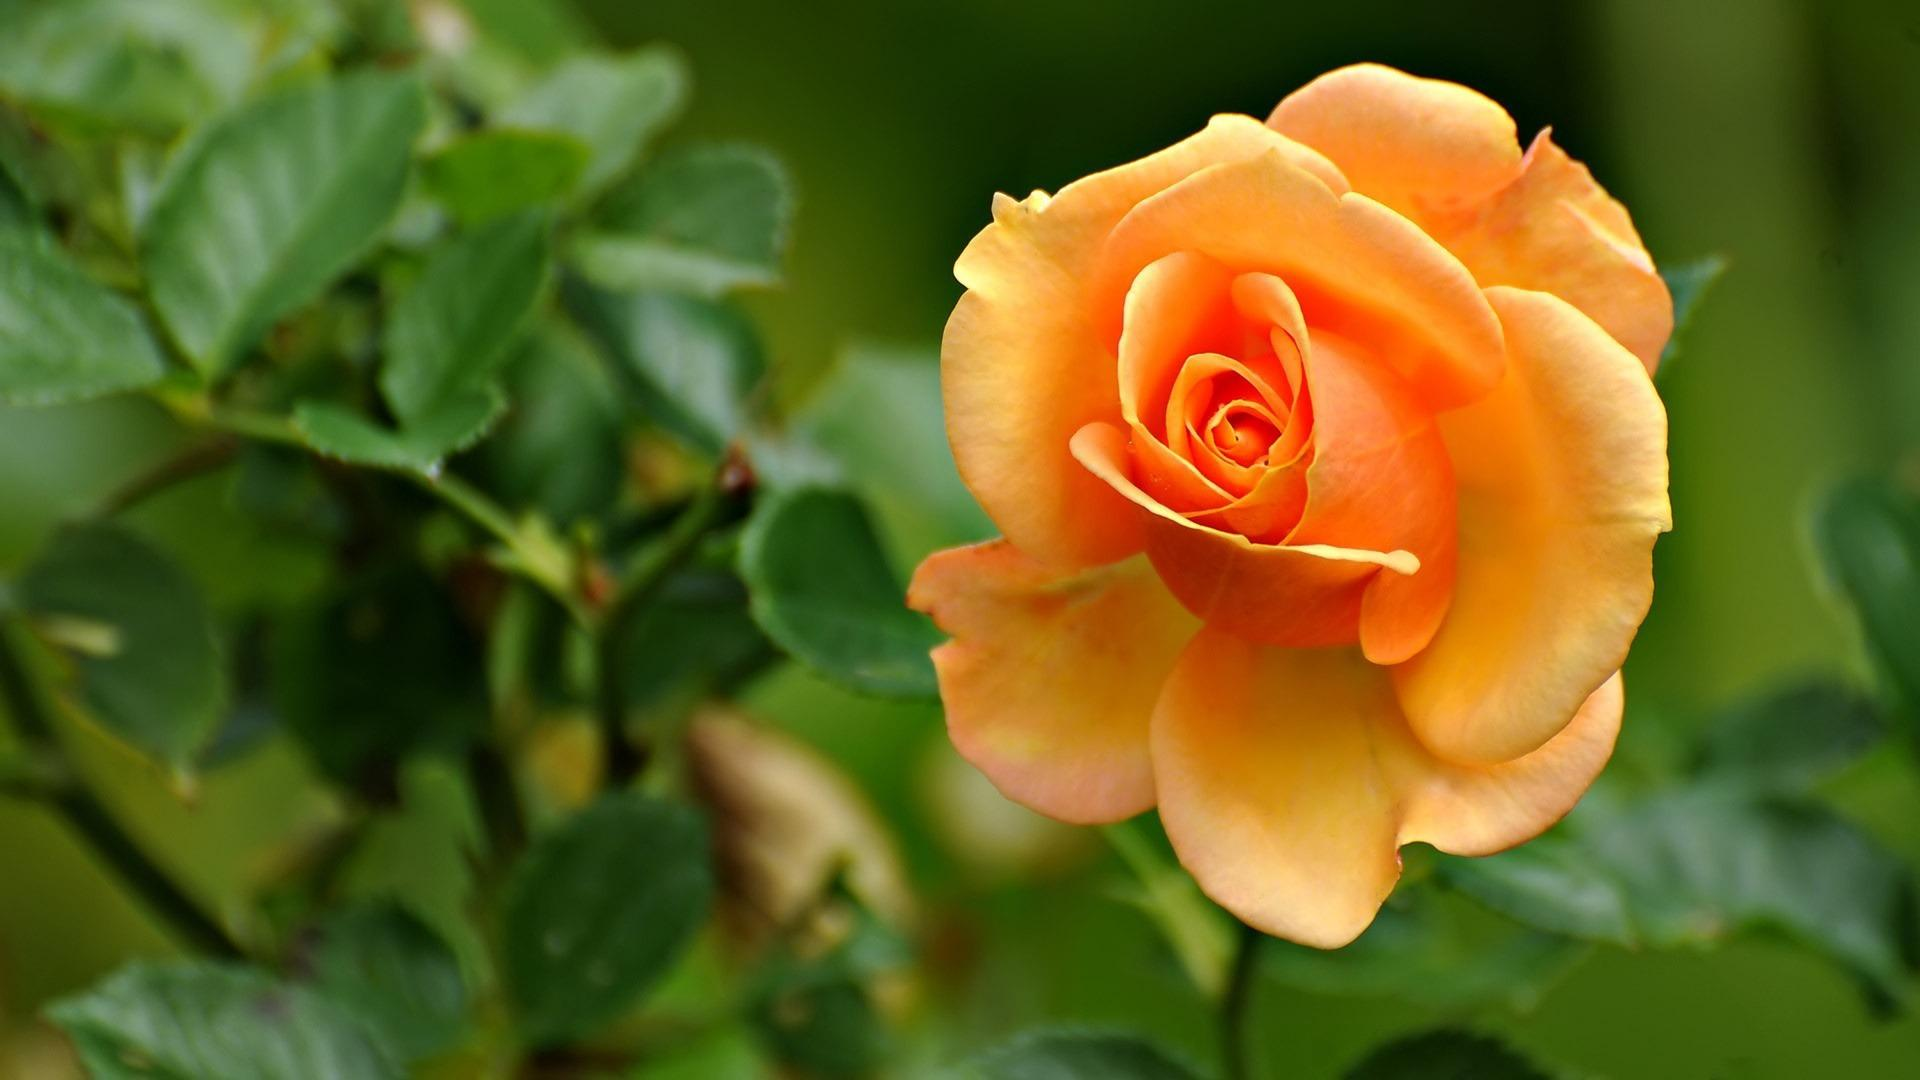 Yellow Rose Wallpapers High Quality | Download Free